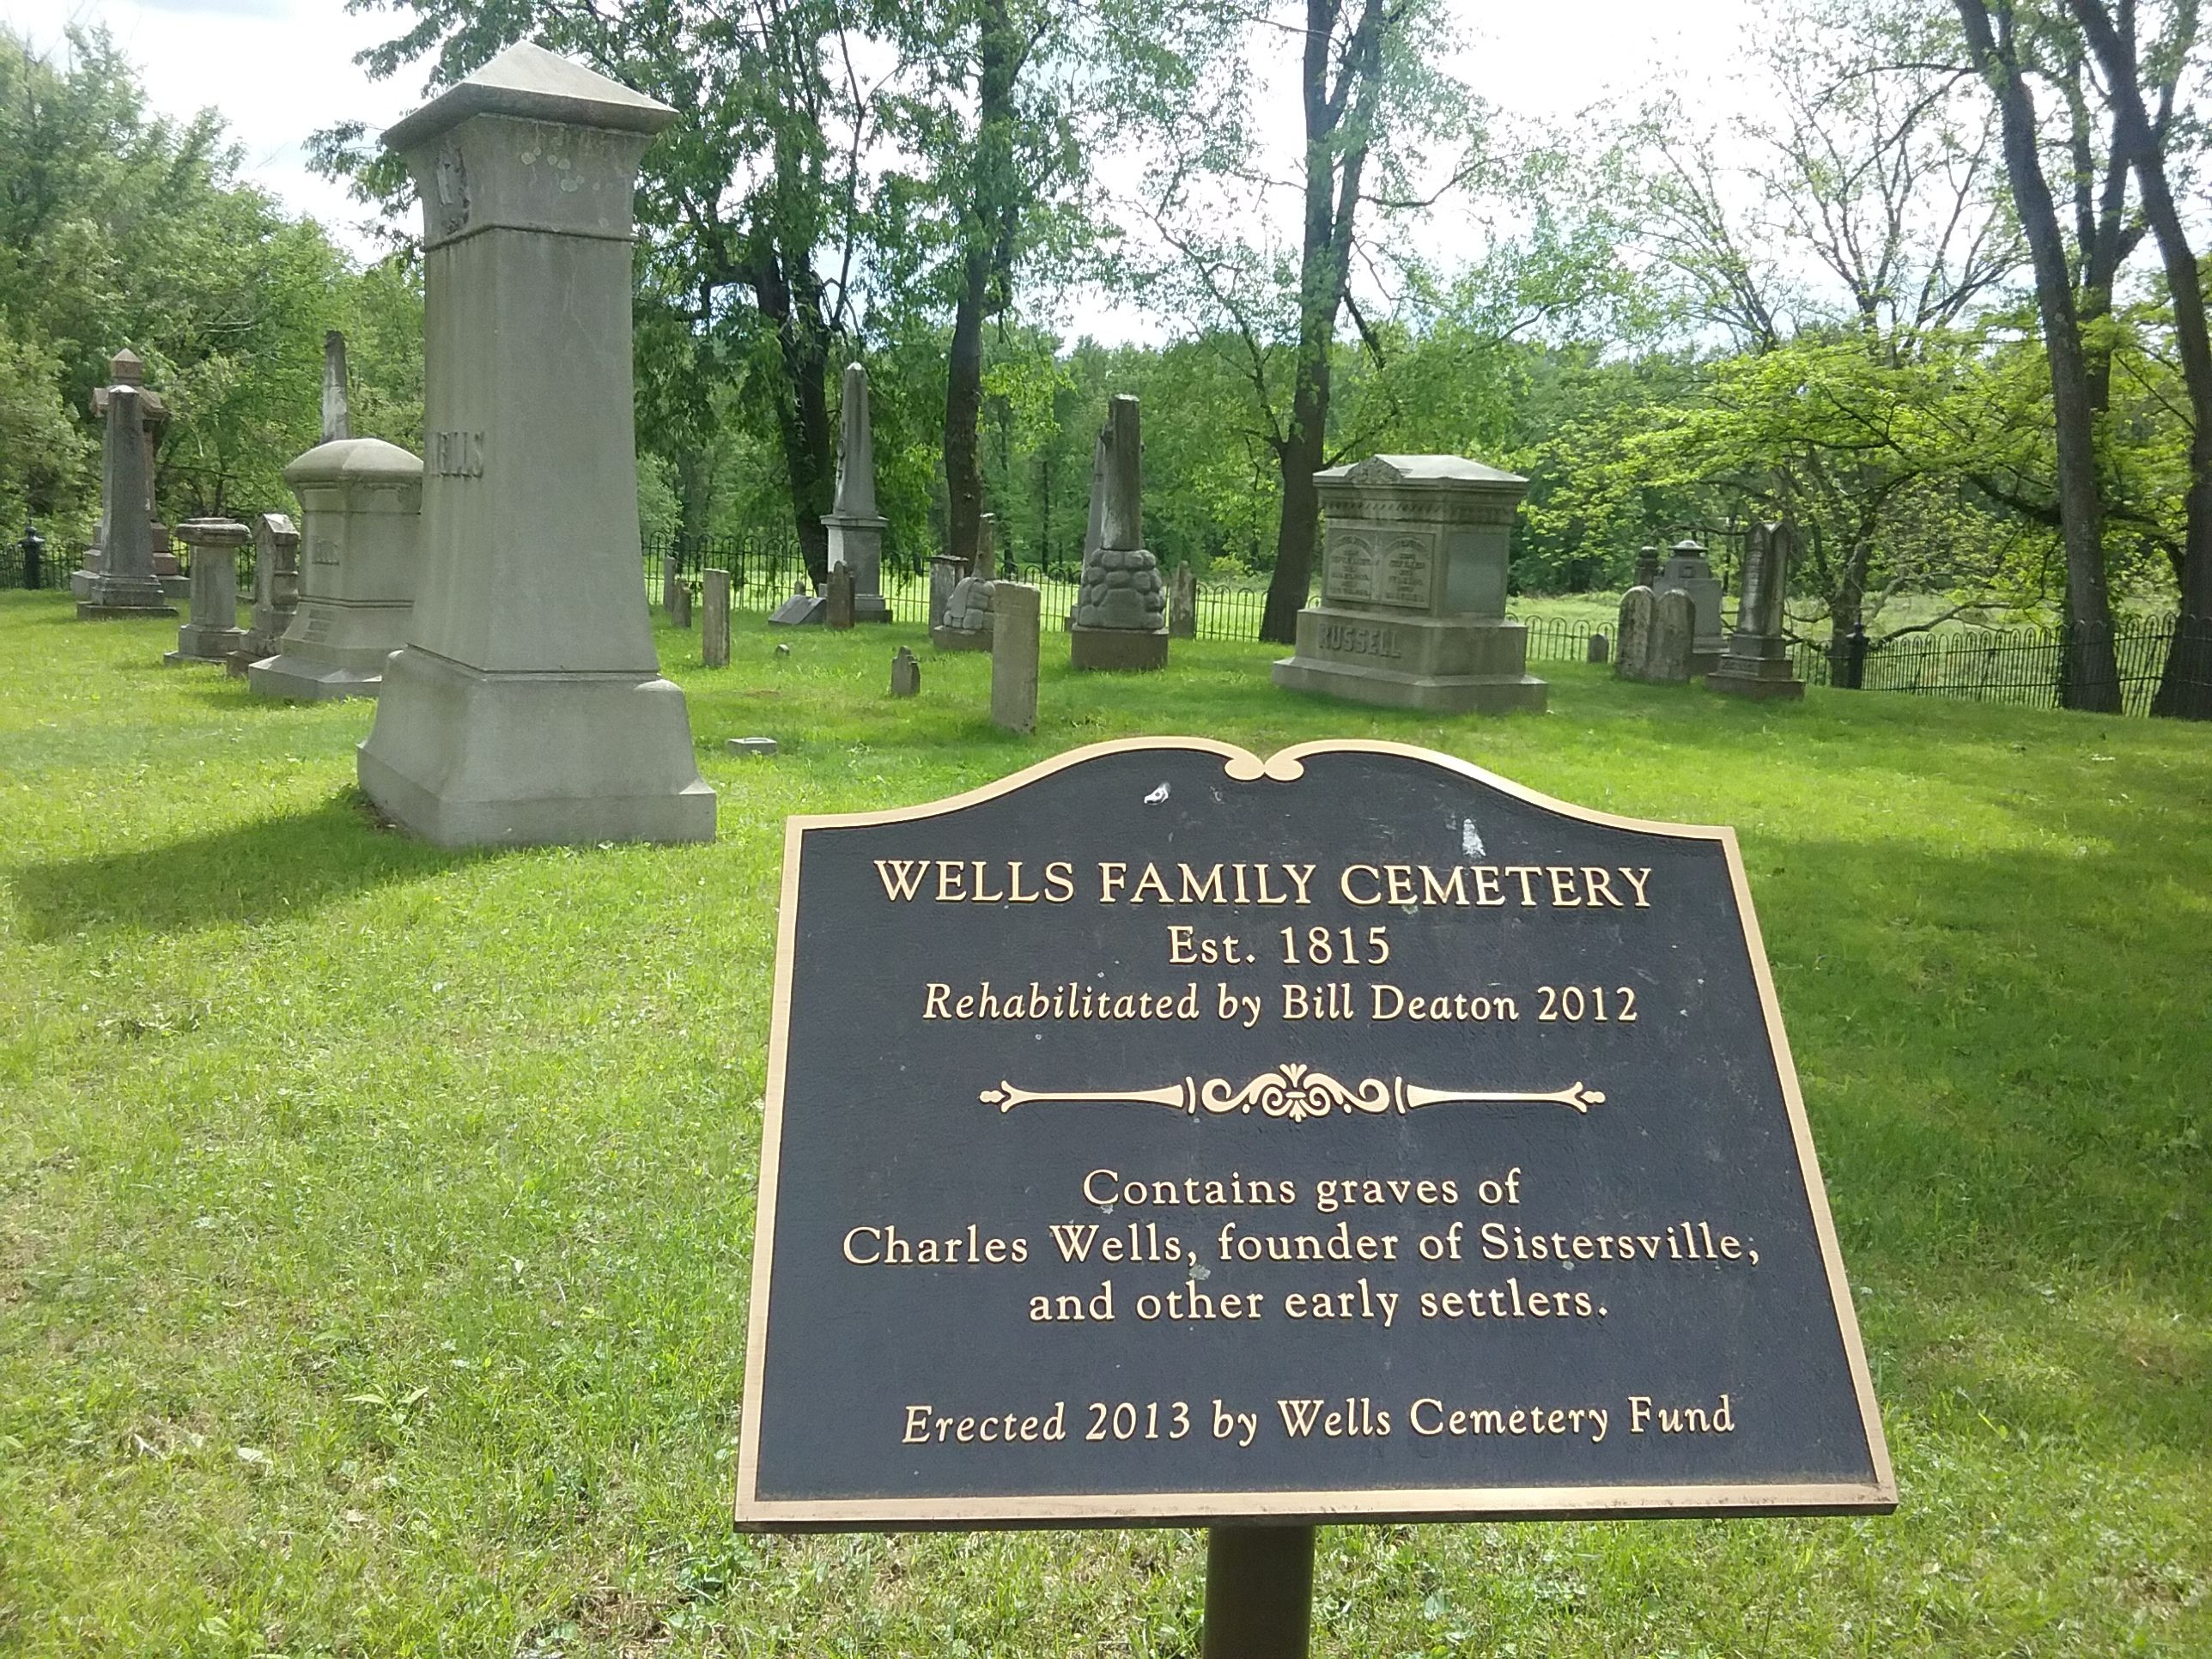 The Wells Family Cemetery